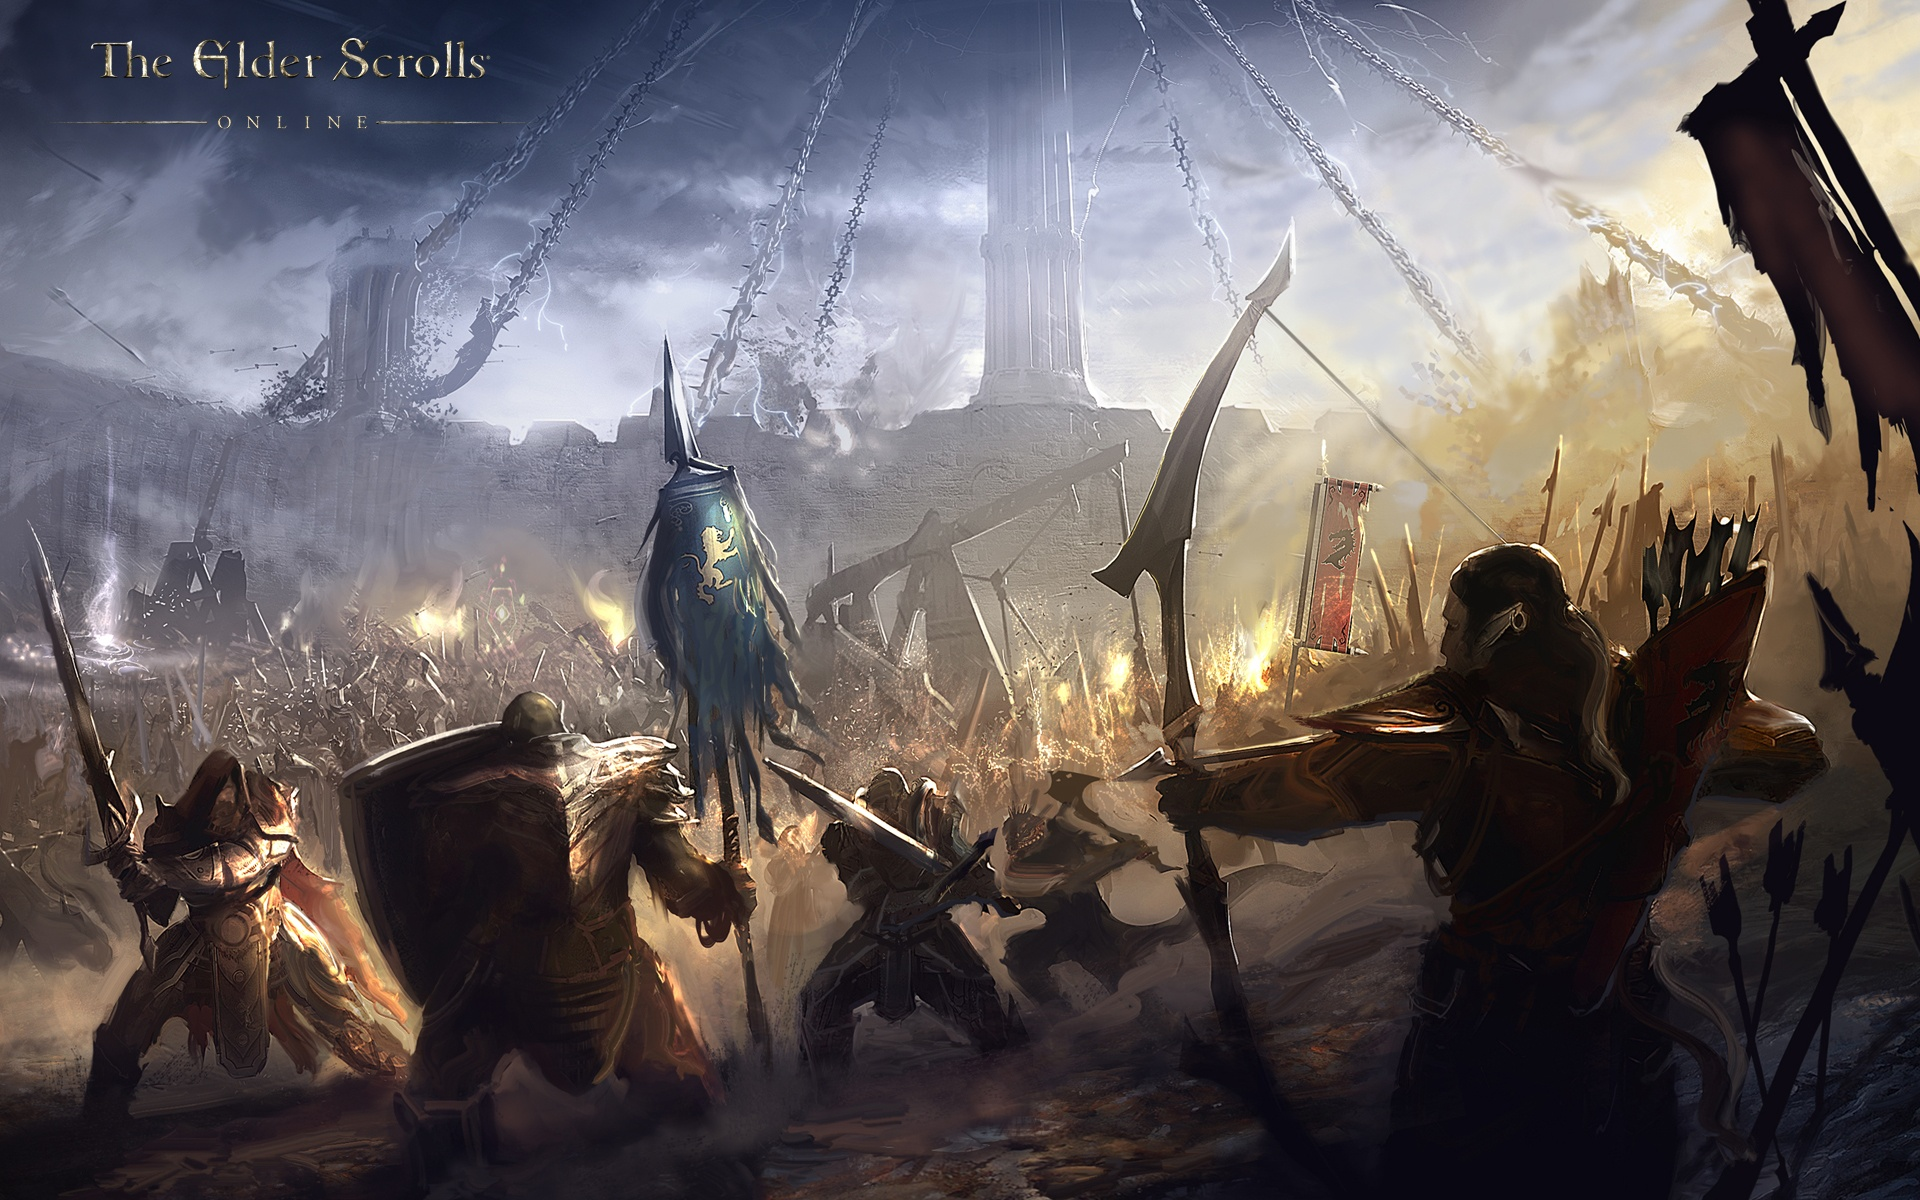 The Elder Scrolls Online Wallpaper 11